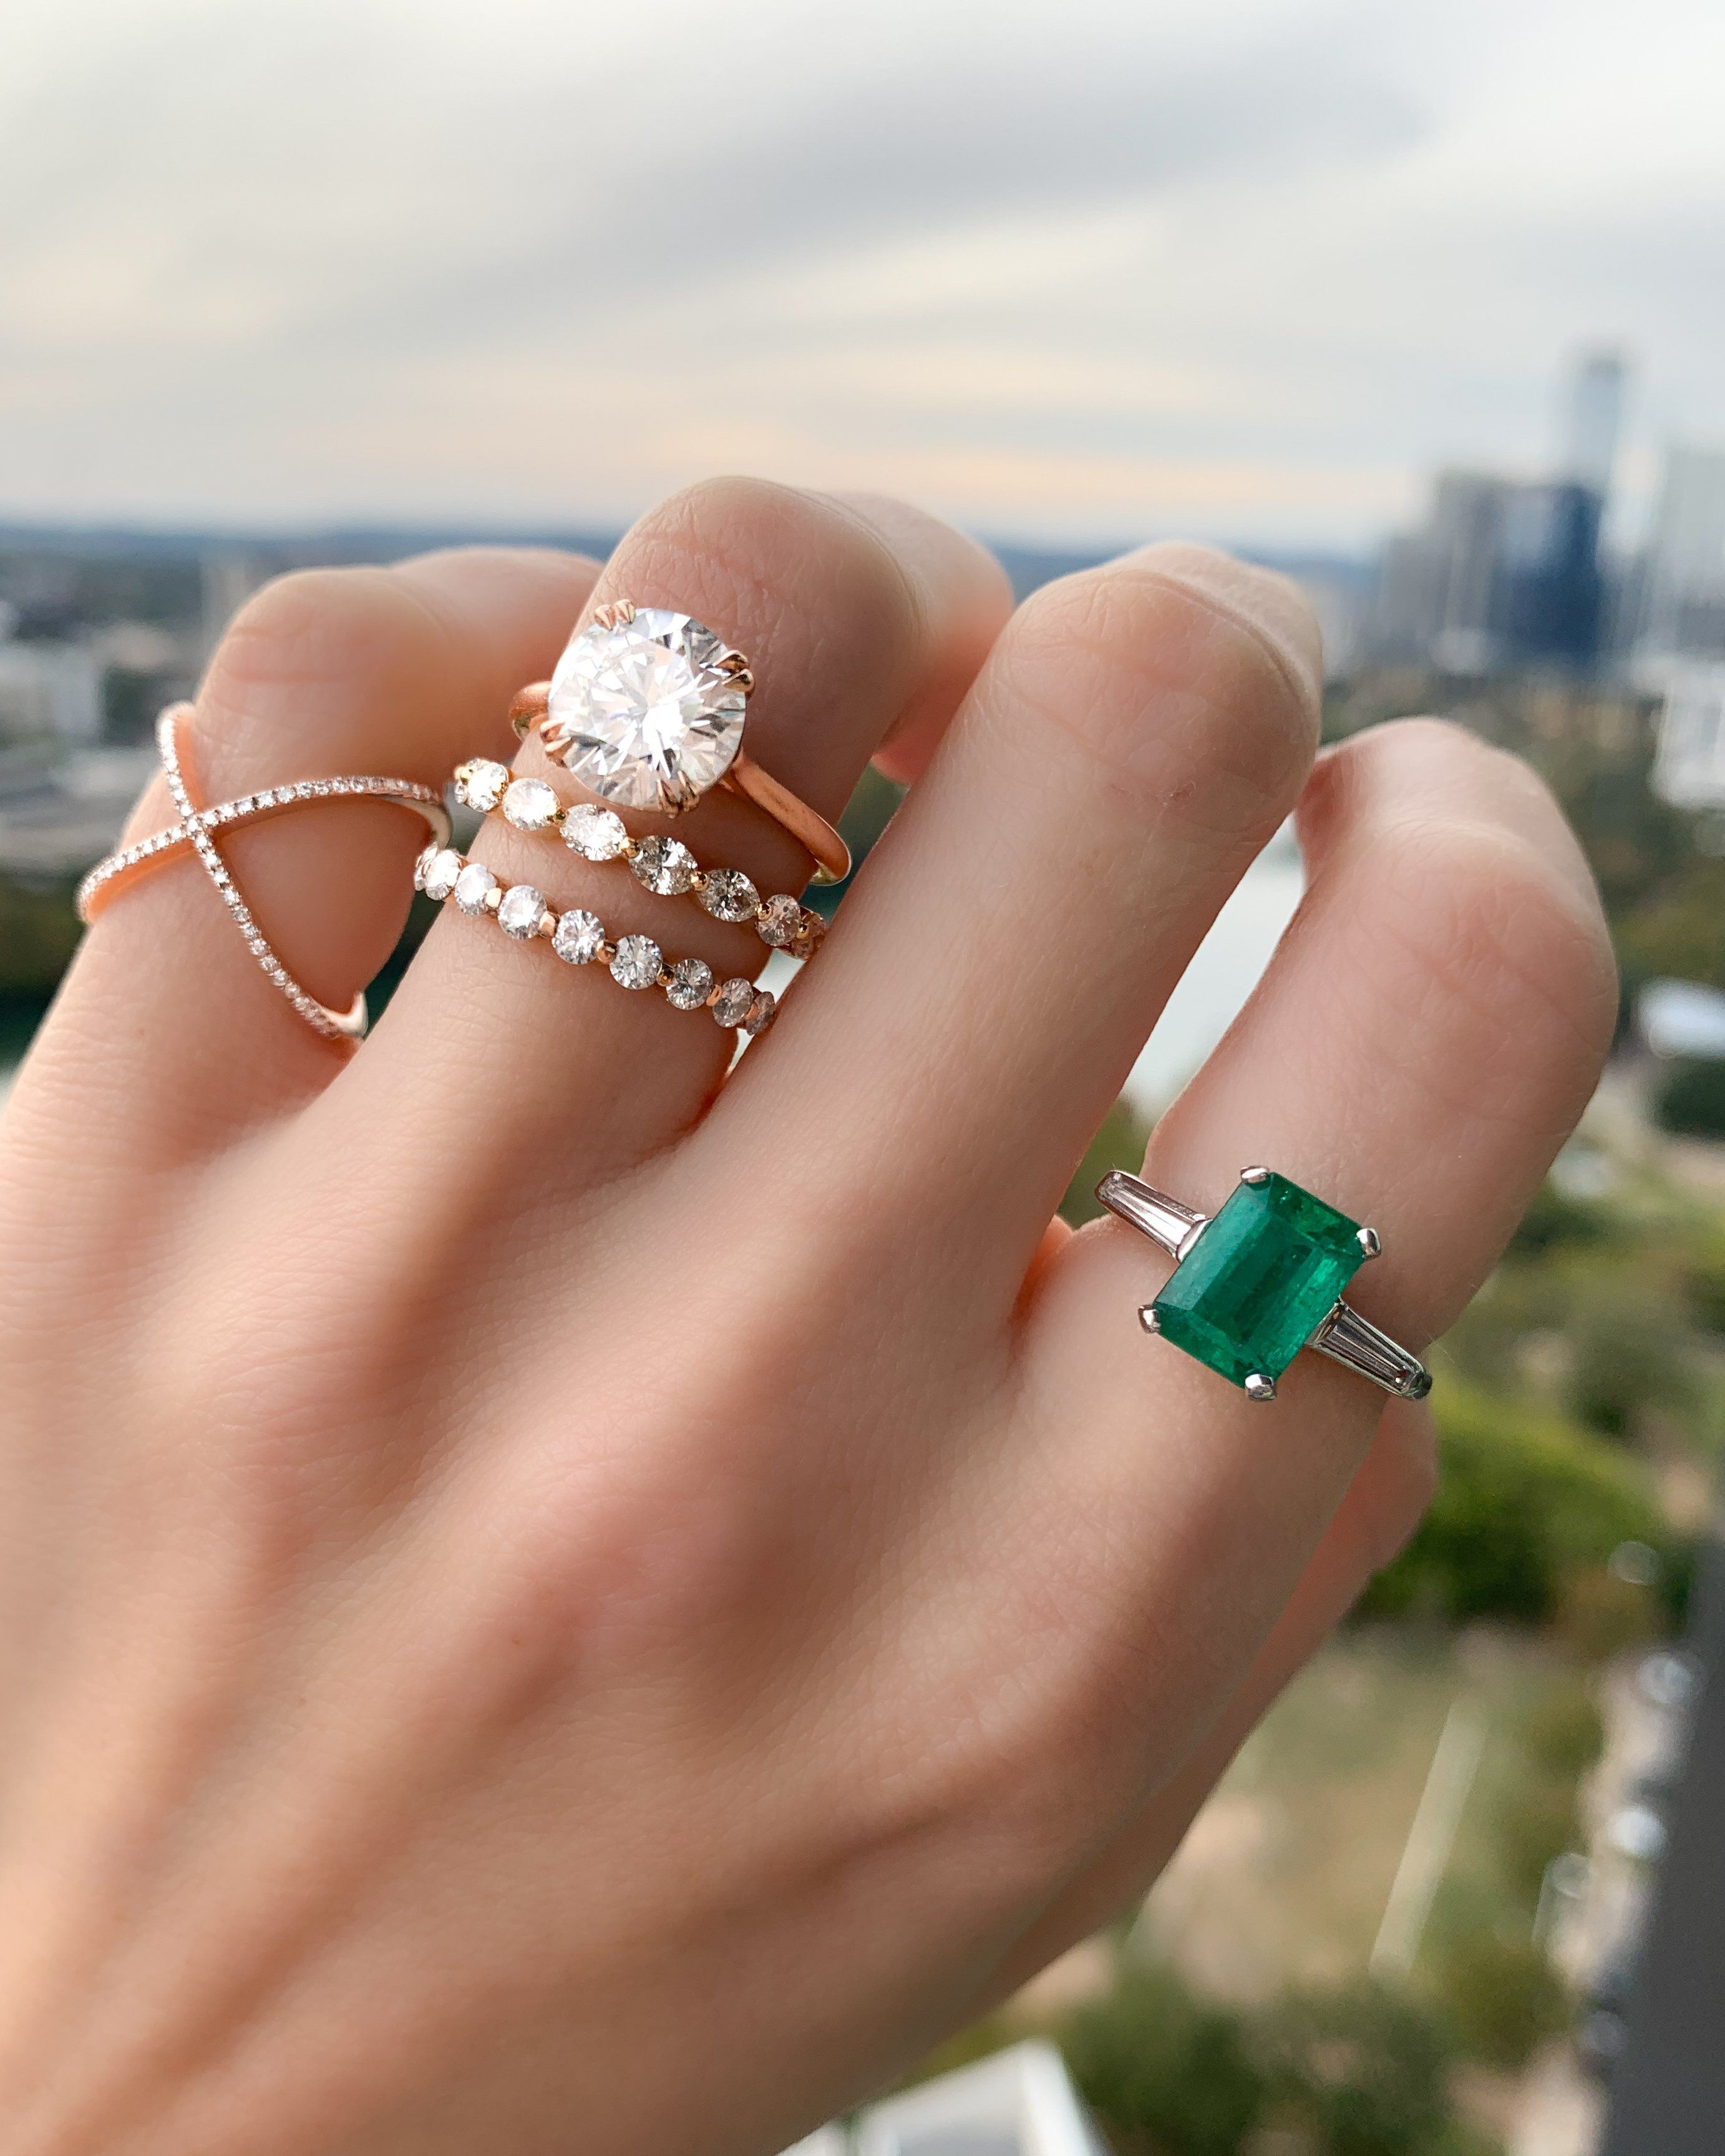 Emerald Cut Emerald Translunar Ring With Tapered Baguette Diamond Side Good Stone Inc